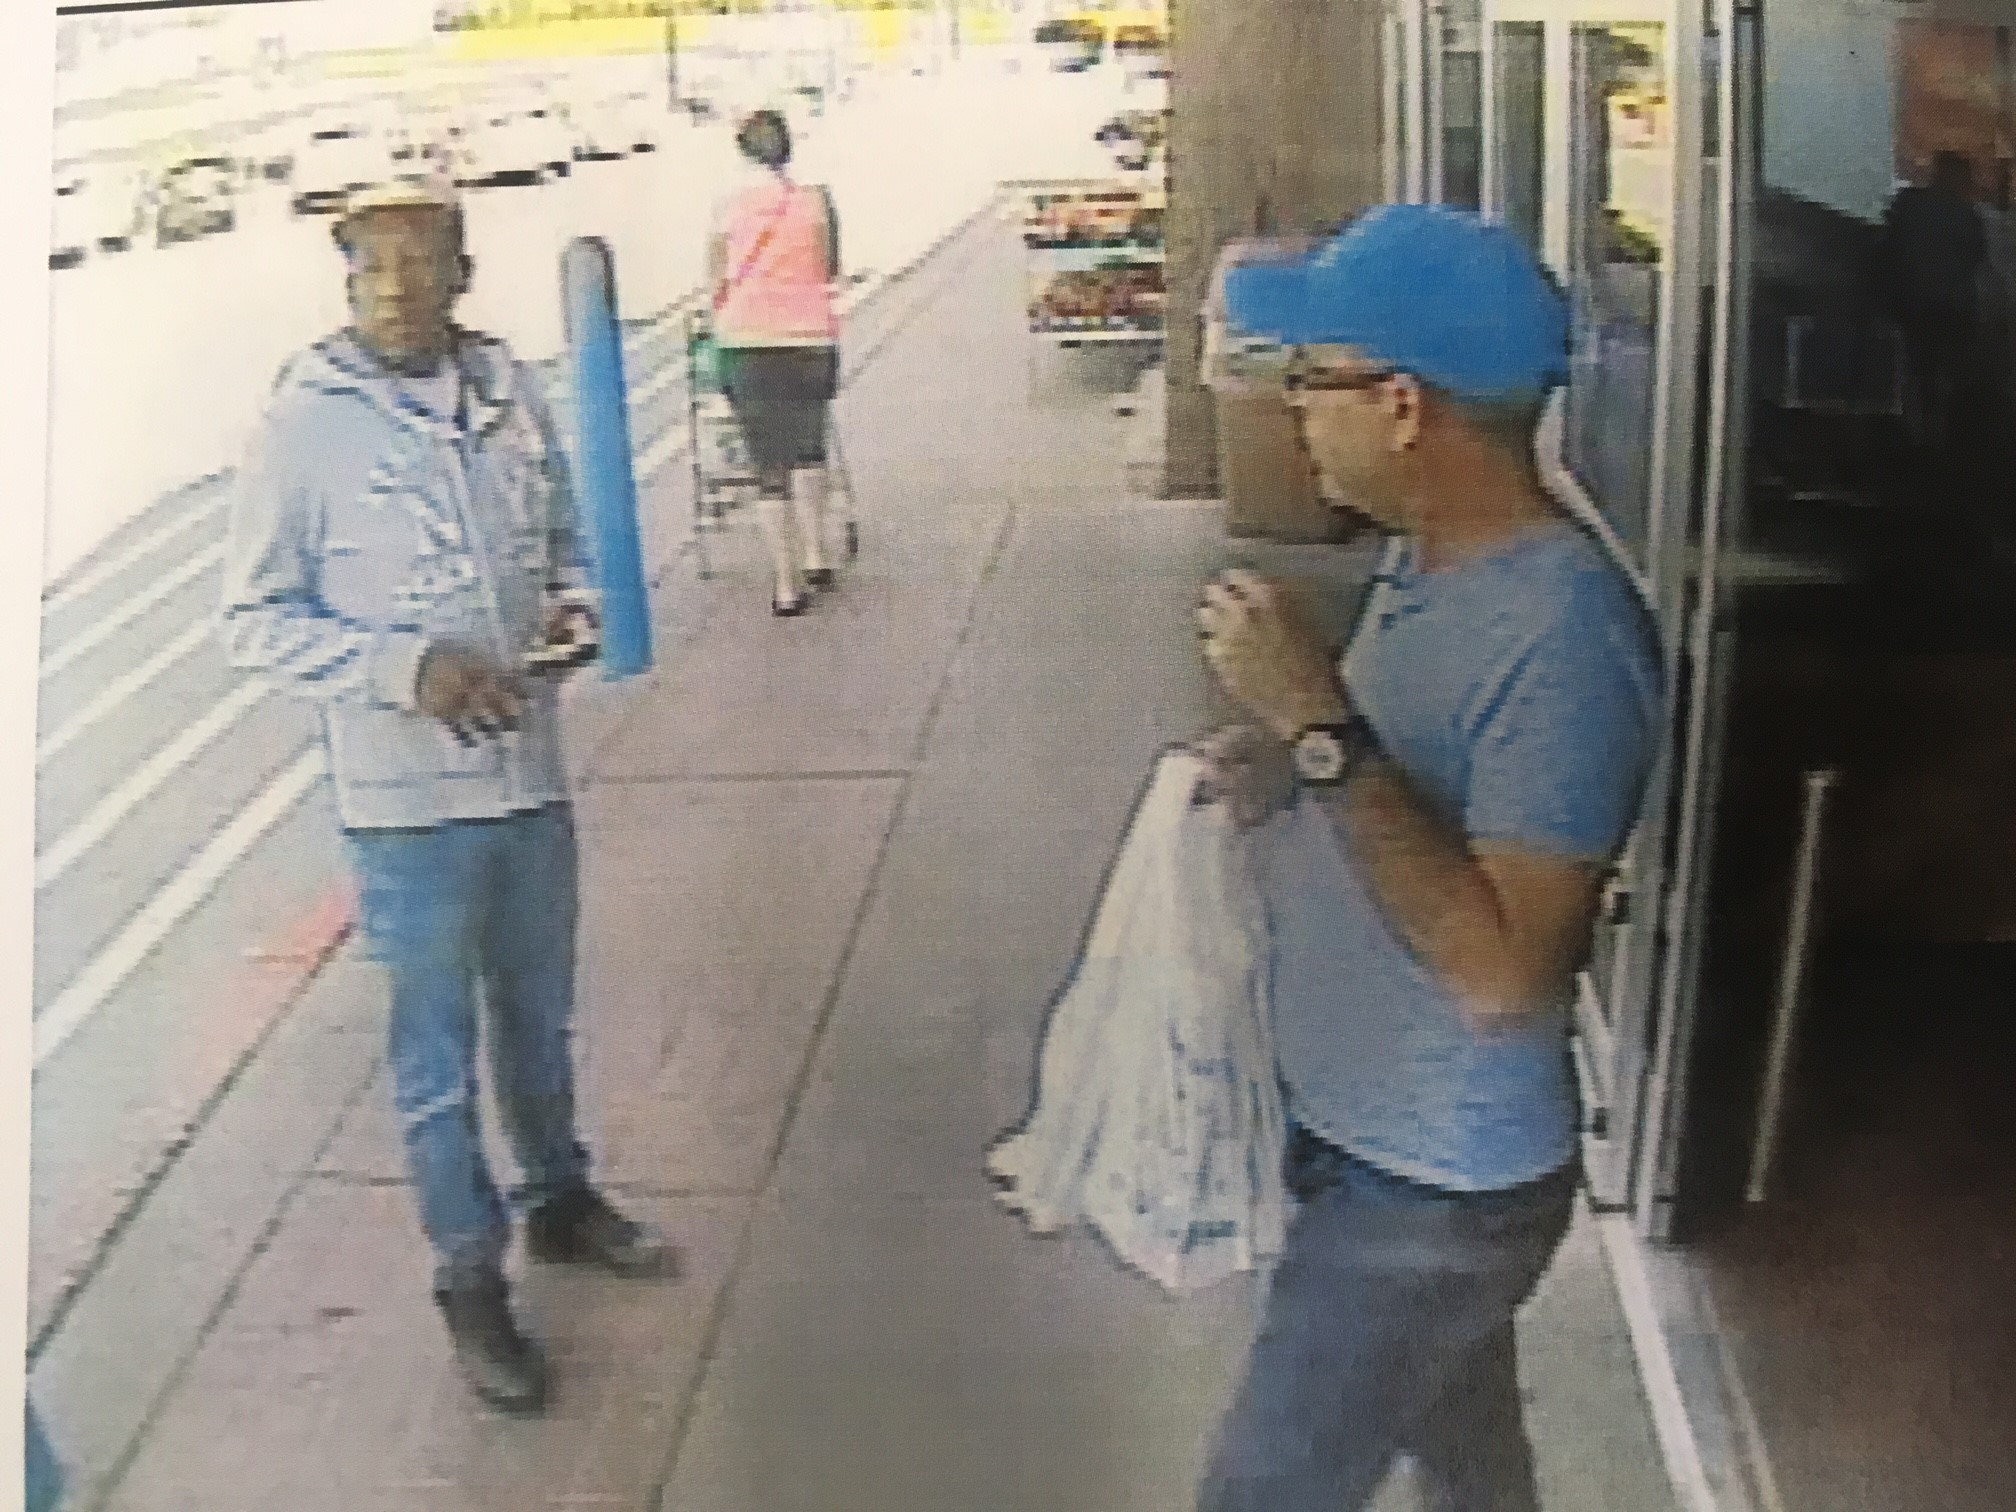 Identity of Excelsior Springs suspects accused of fraudulent credit card use still in question